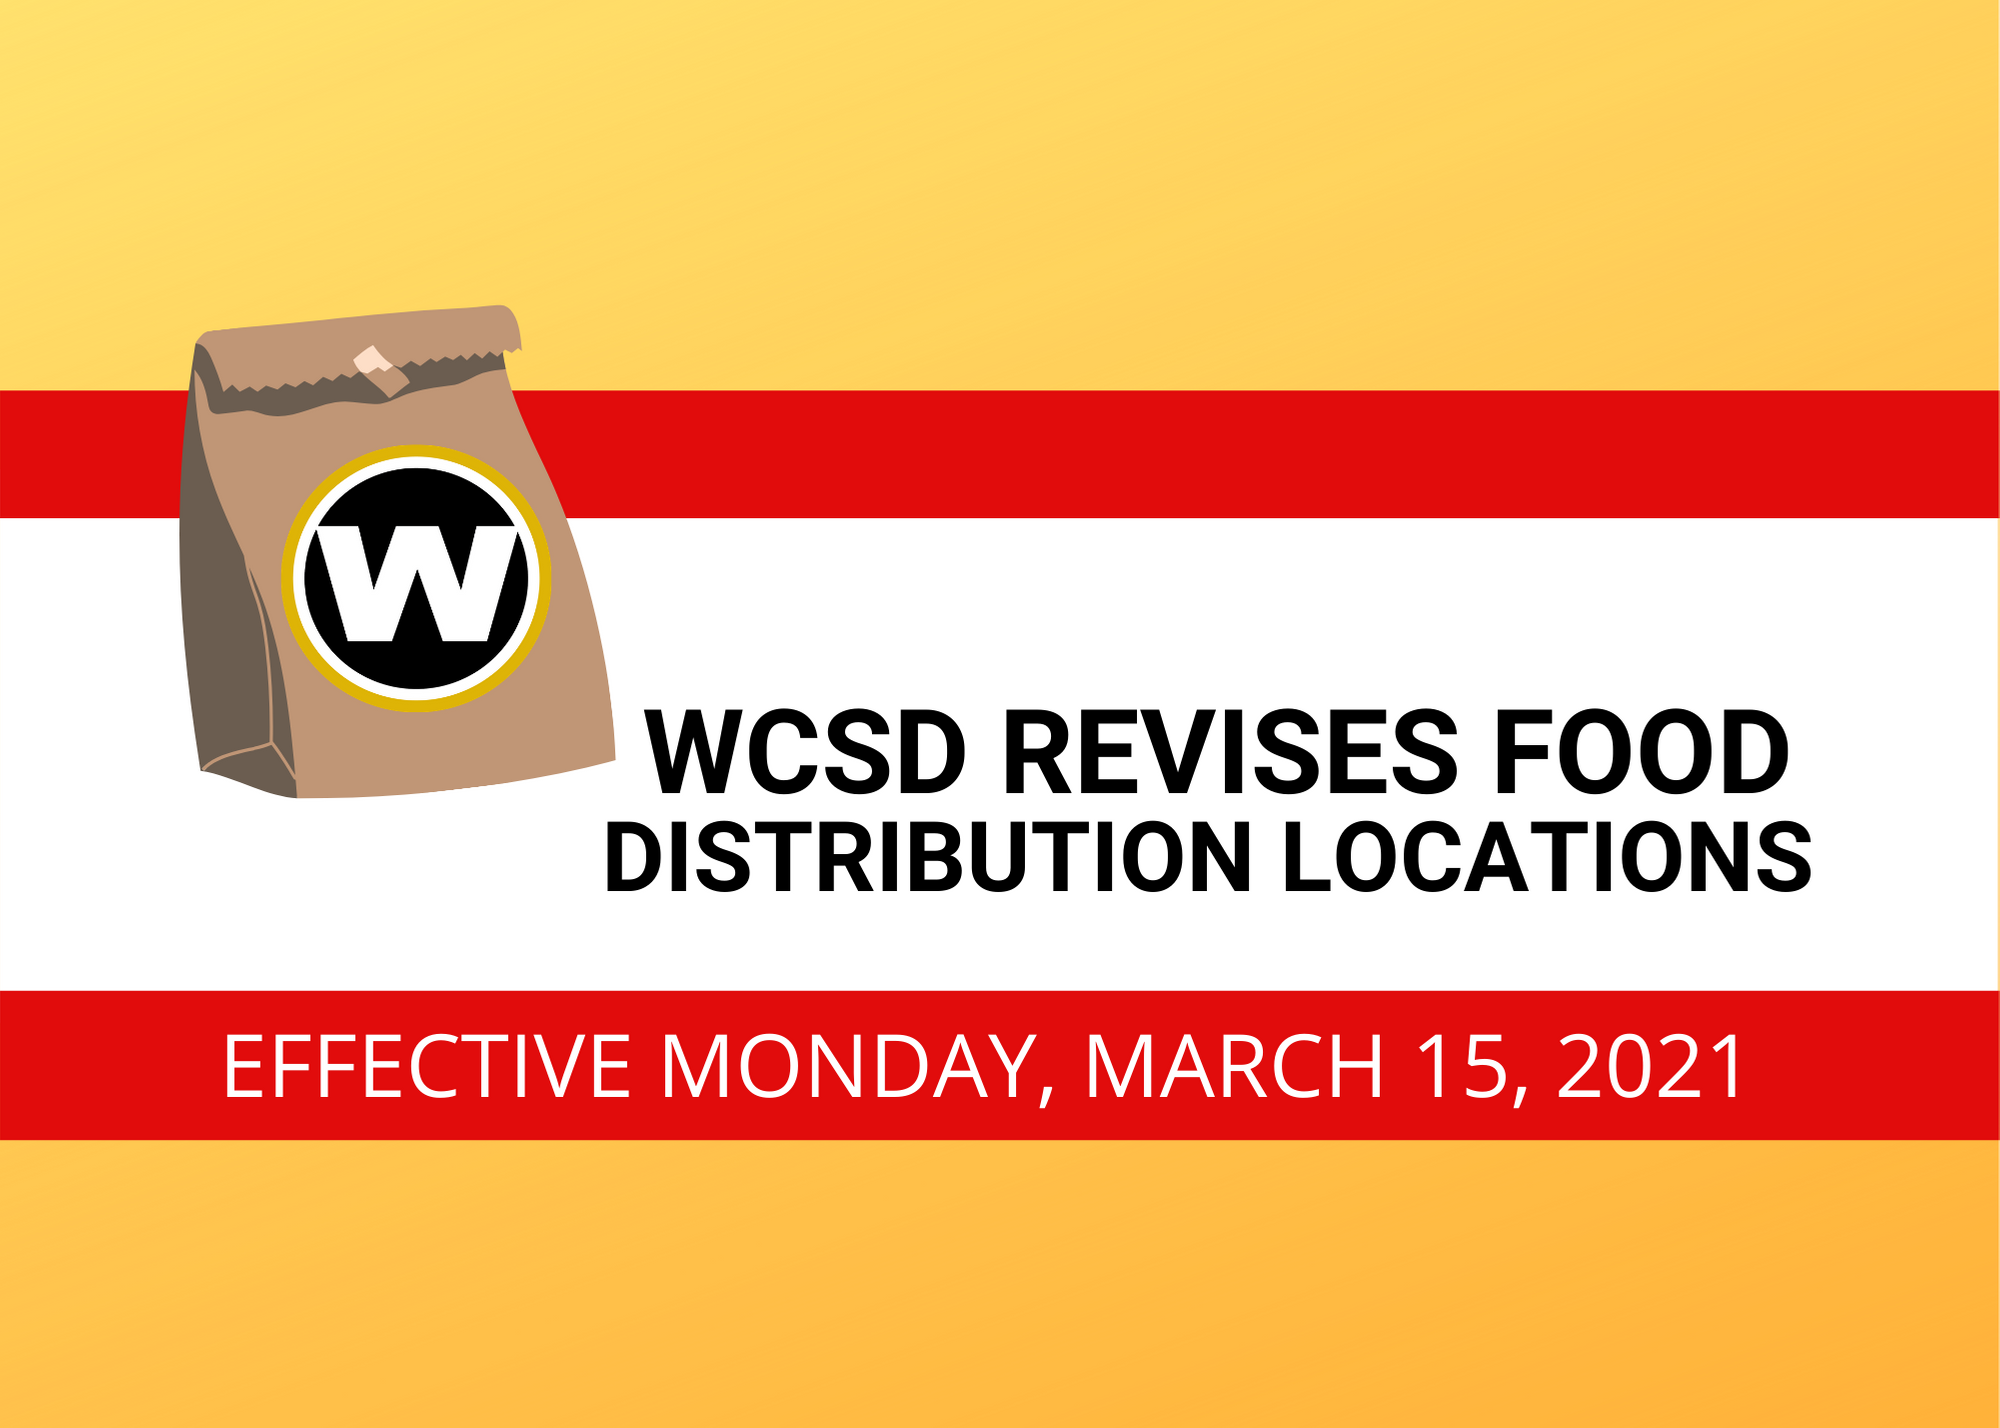 Warren City Schools Announce New Food Distribution Sites & Times